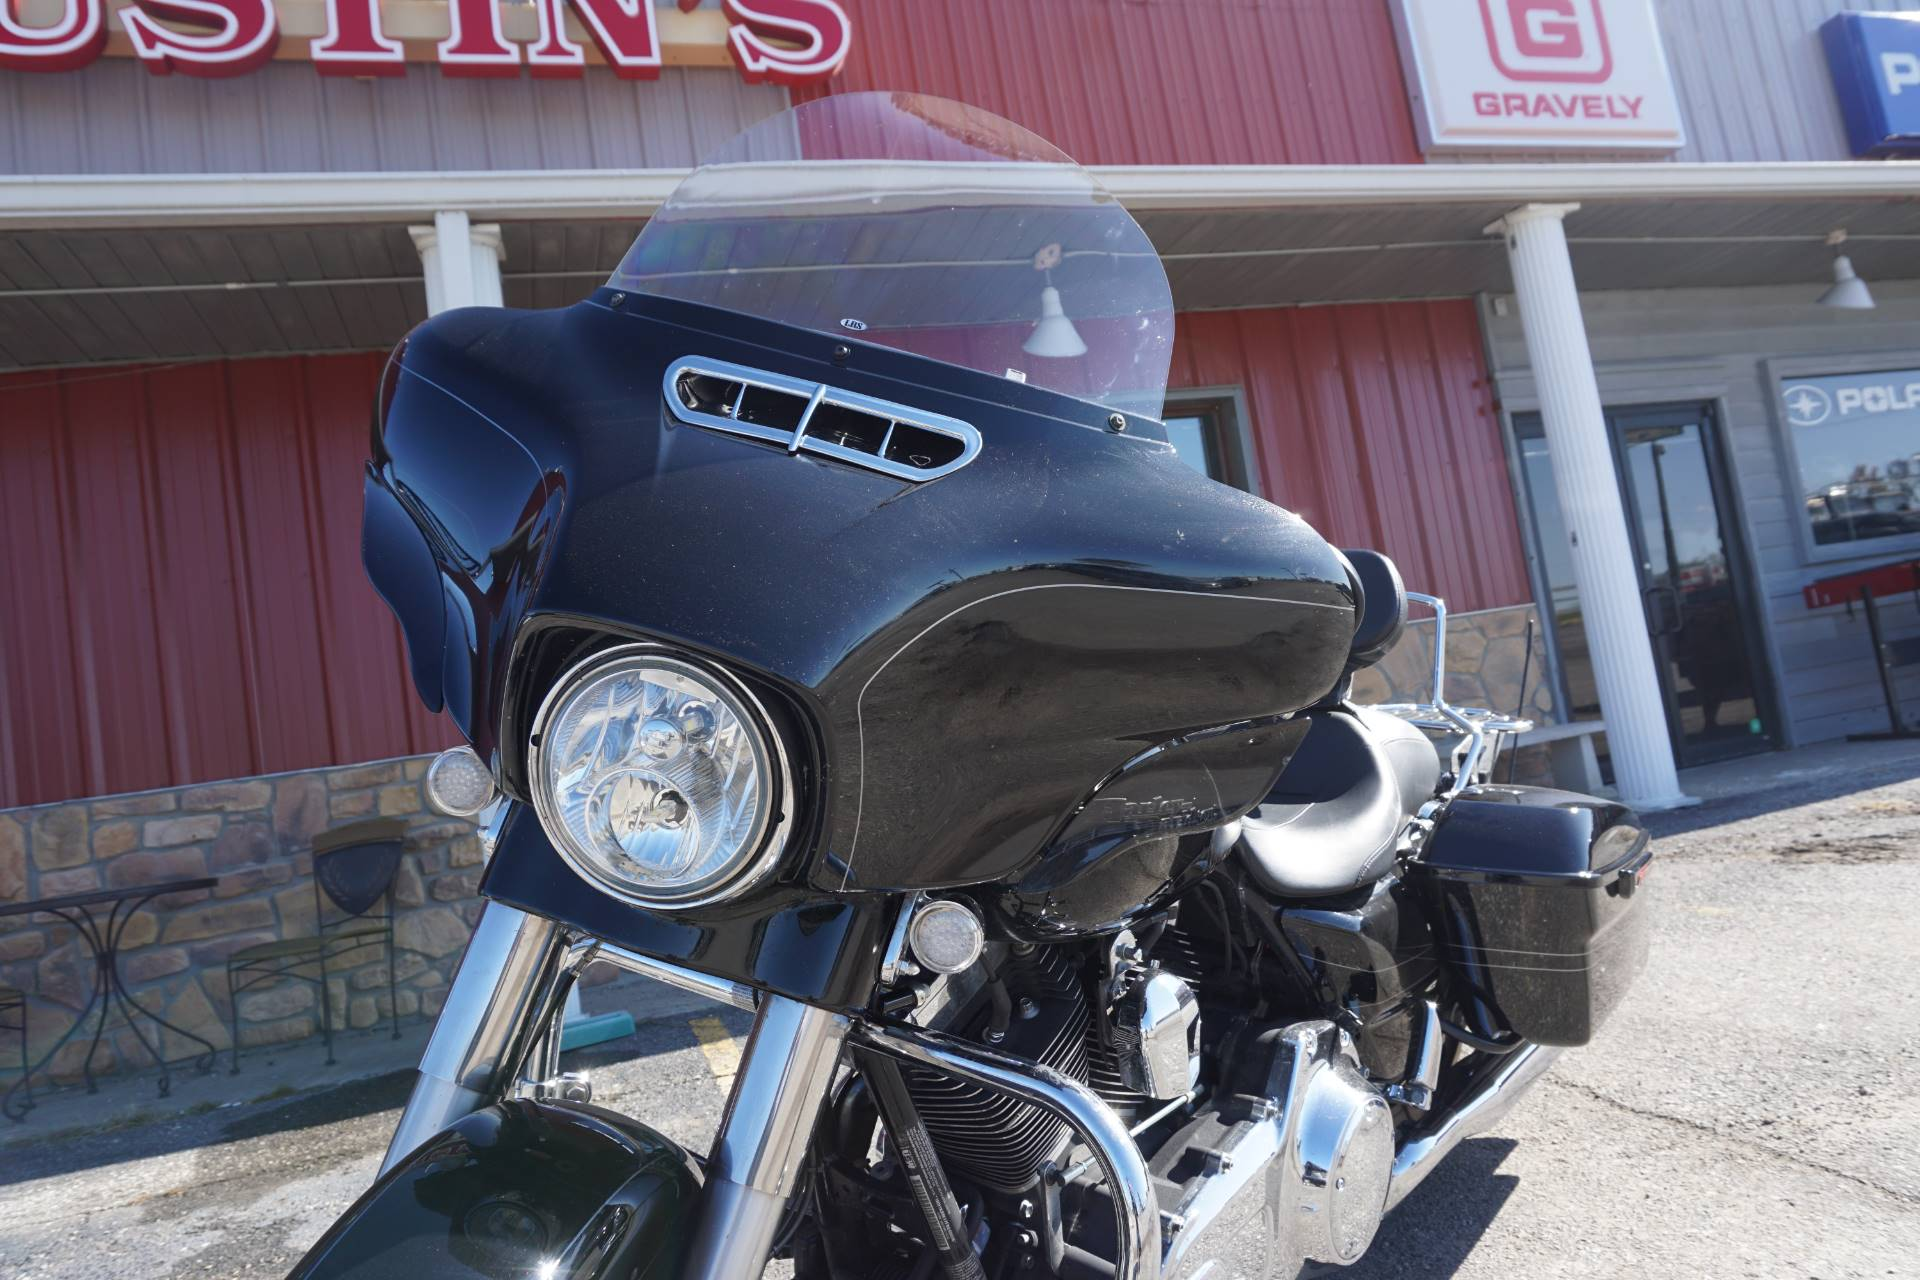 2015 Harley Davidson STREET GLIDE SPECIAL in Kansas City, Kansas - Photo 3